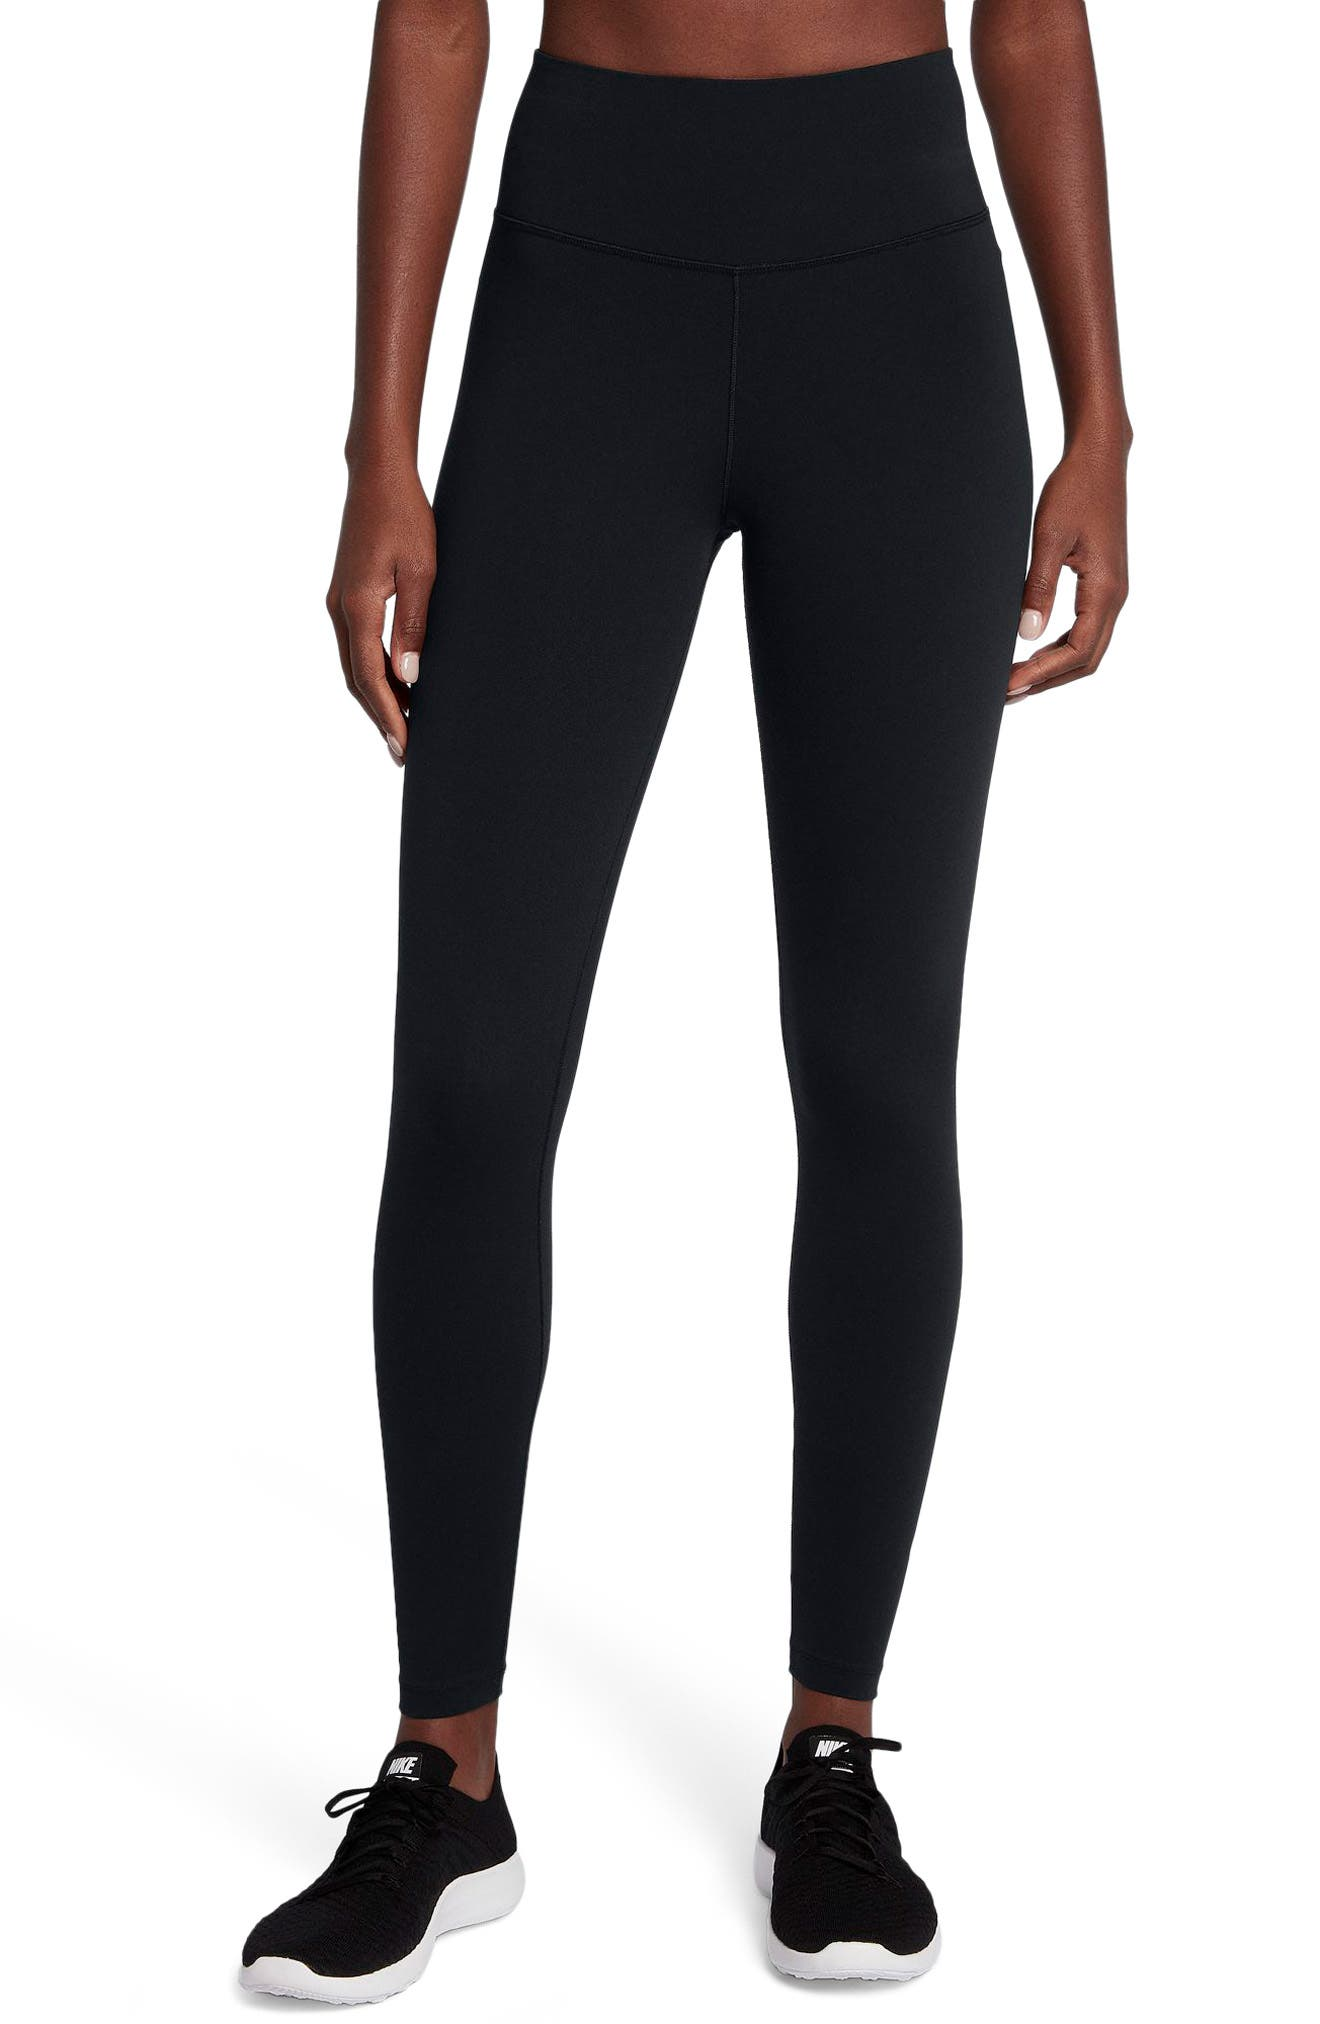 Sculpt Lux Training Tights,                         Main,                         color, Black/ Clear